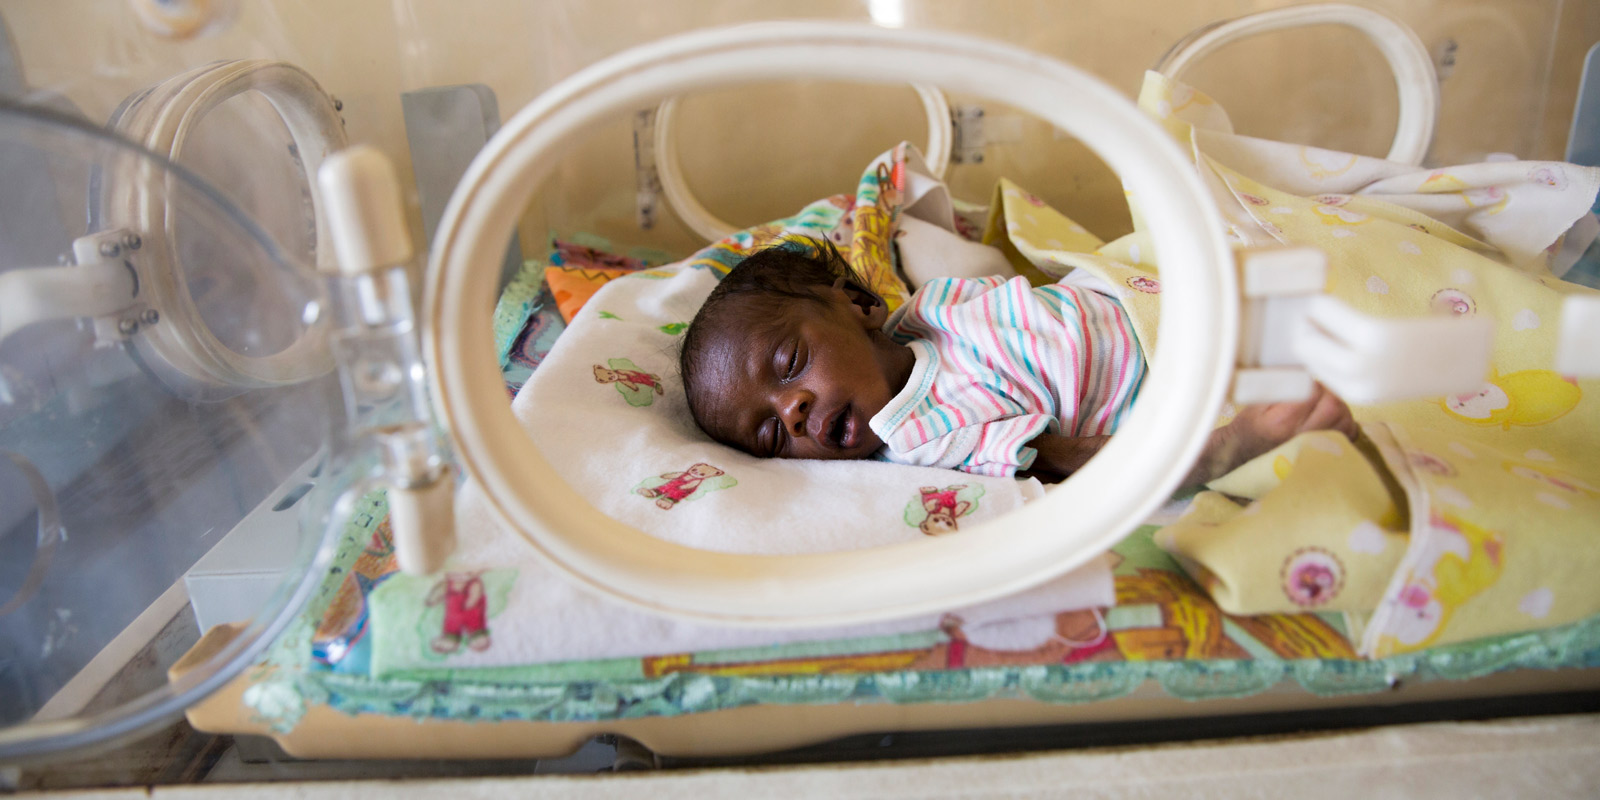 This newborn infant lies in an incubator, suffering from sepsis and jaundice , struggling to survive. His mother died giving birth.